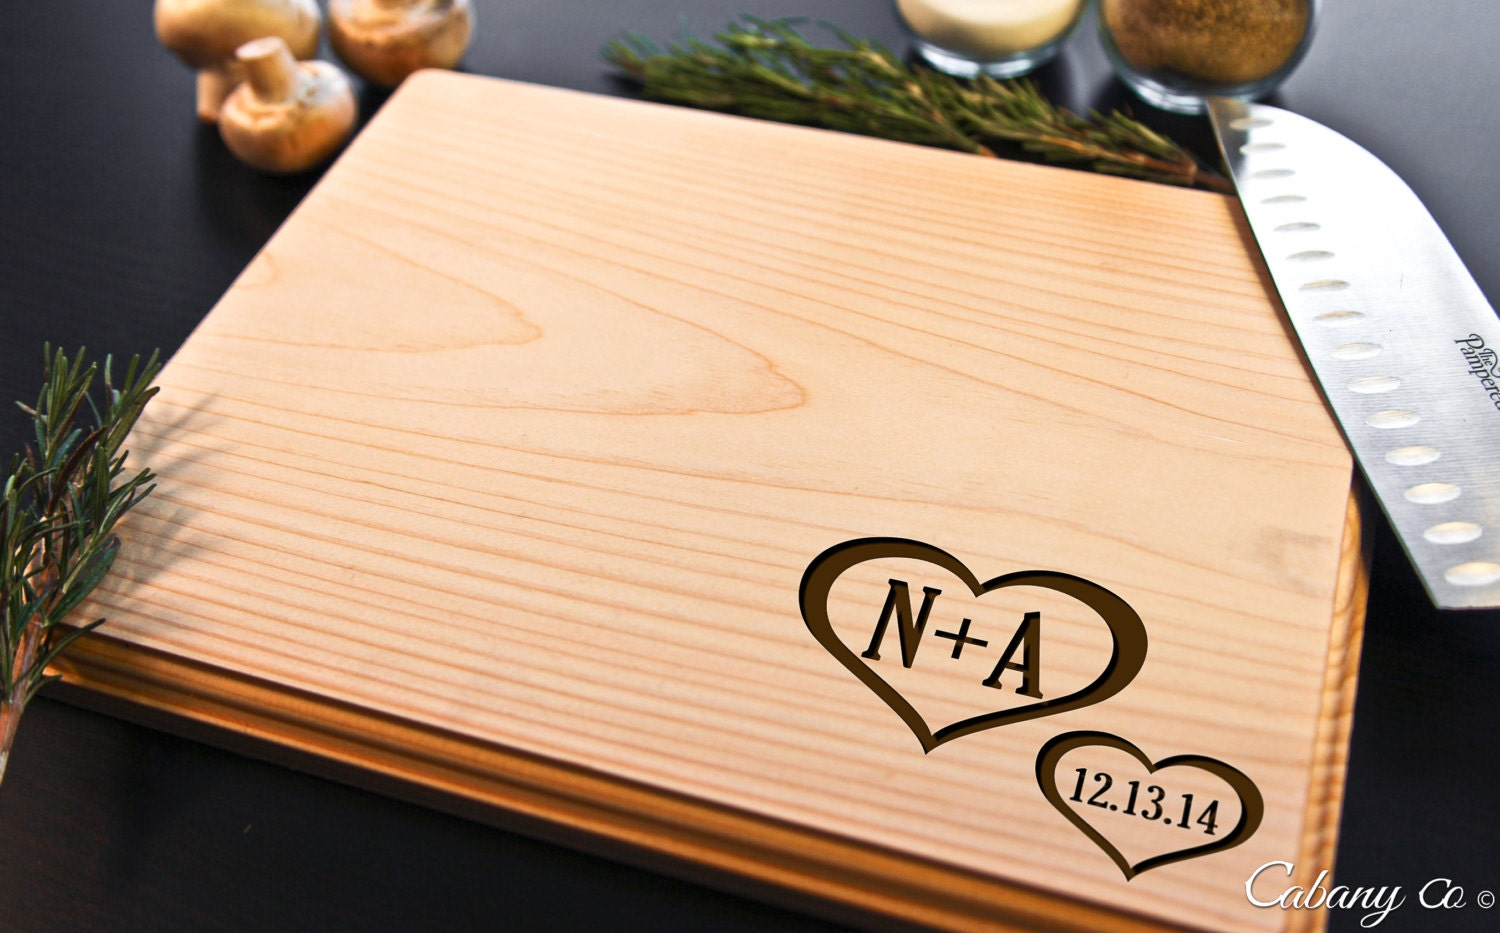 Personalized cutting board wood engraved hearts love by cabanyco - Engraved wooden chopping boards ...